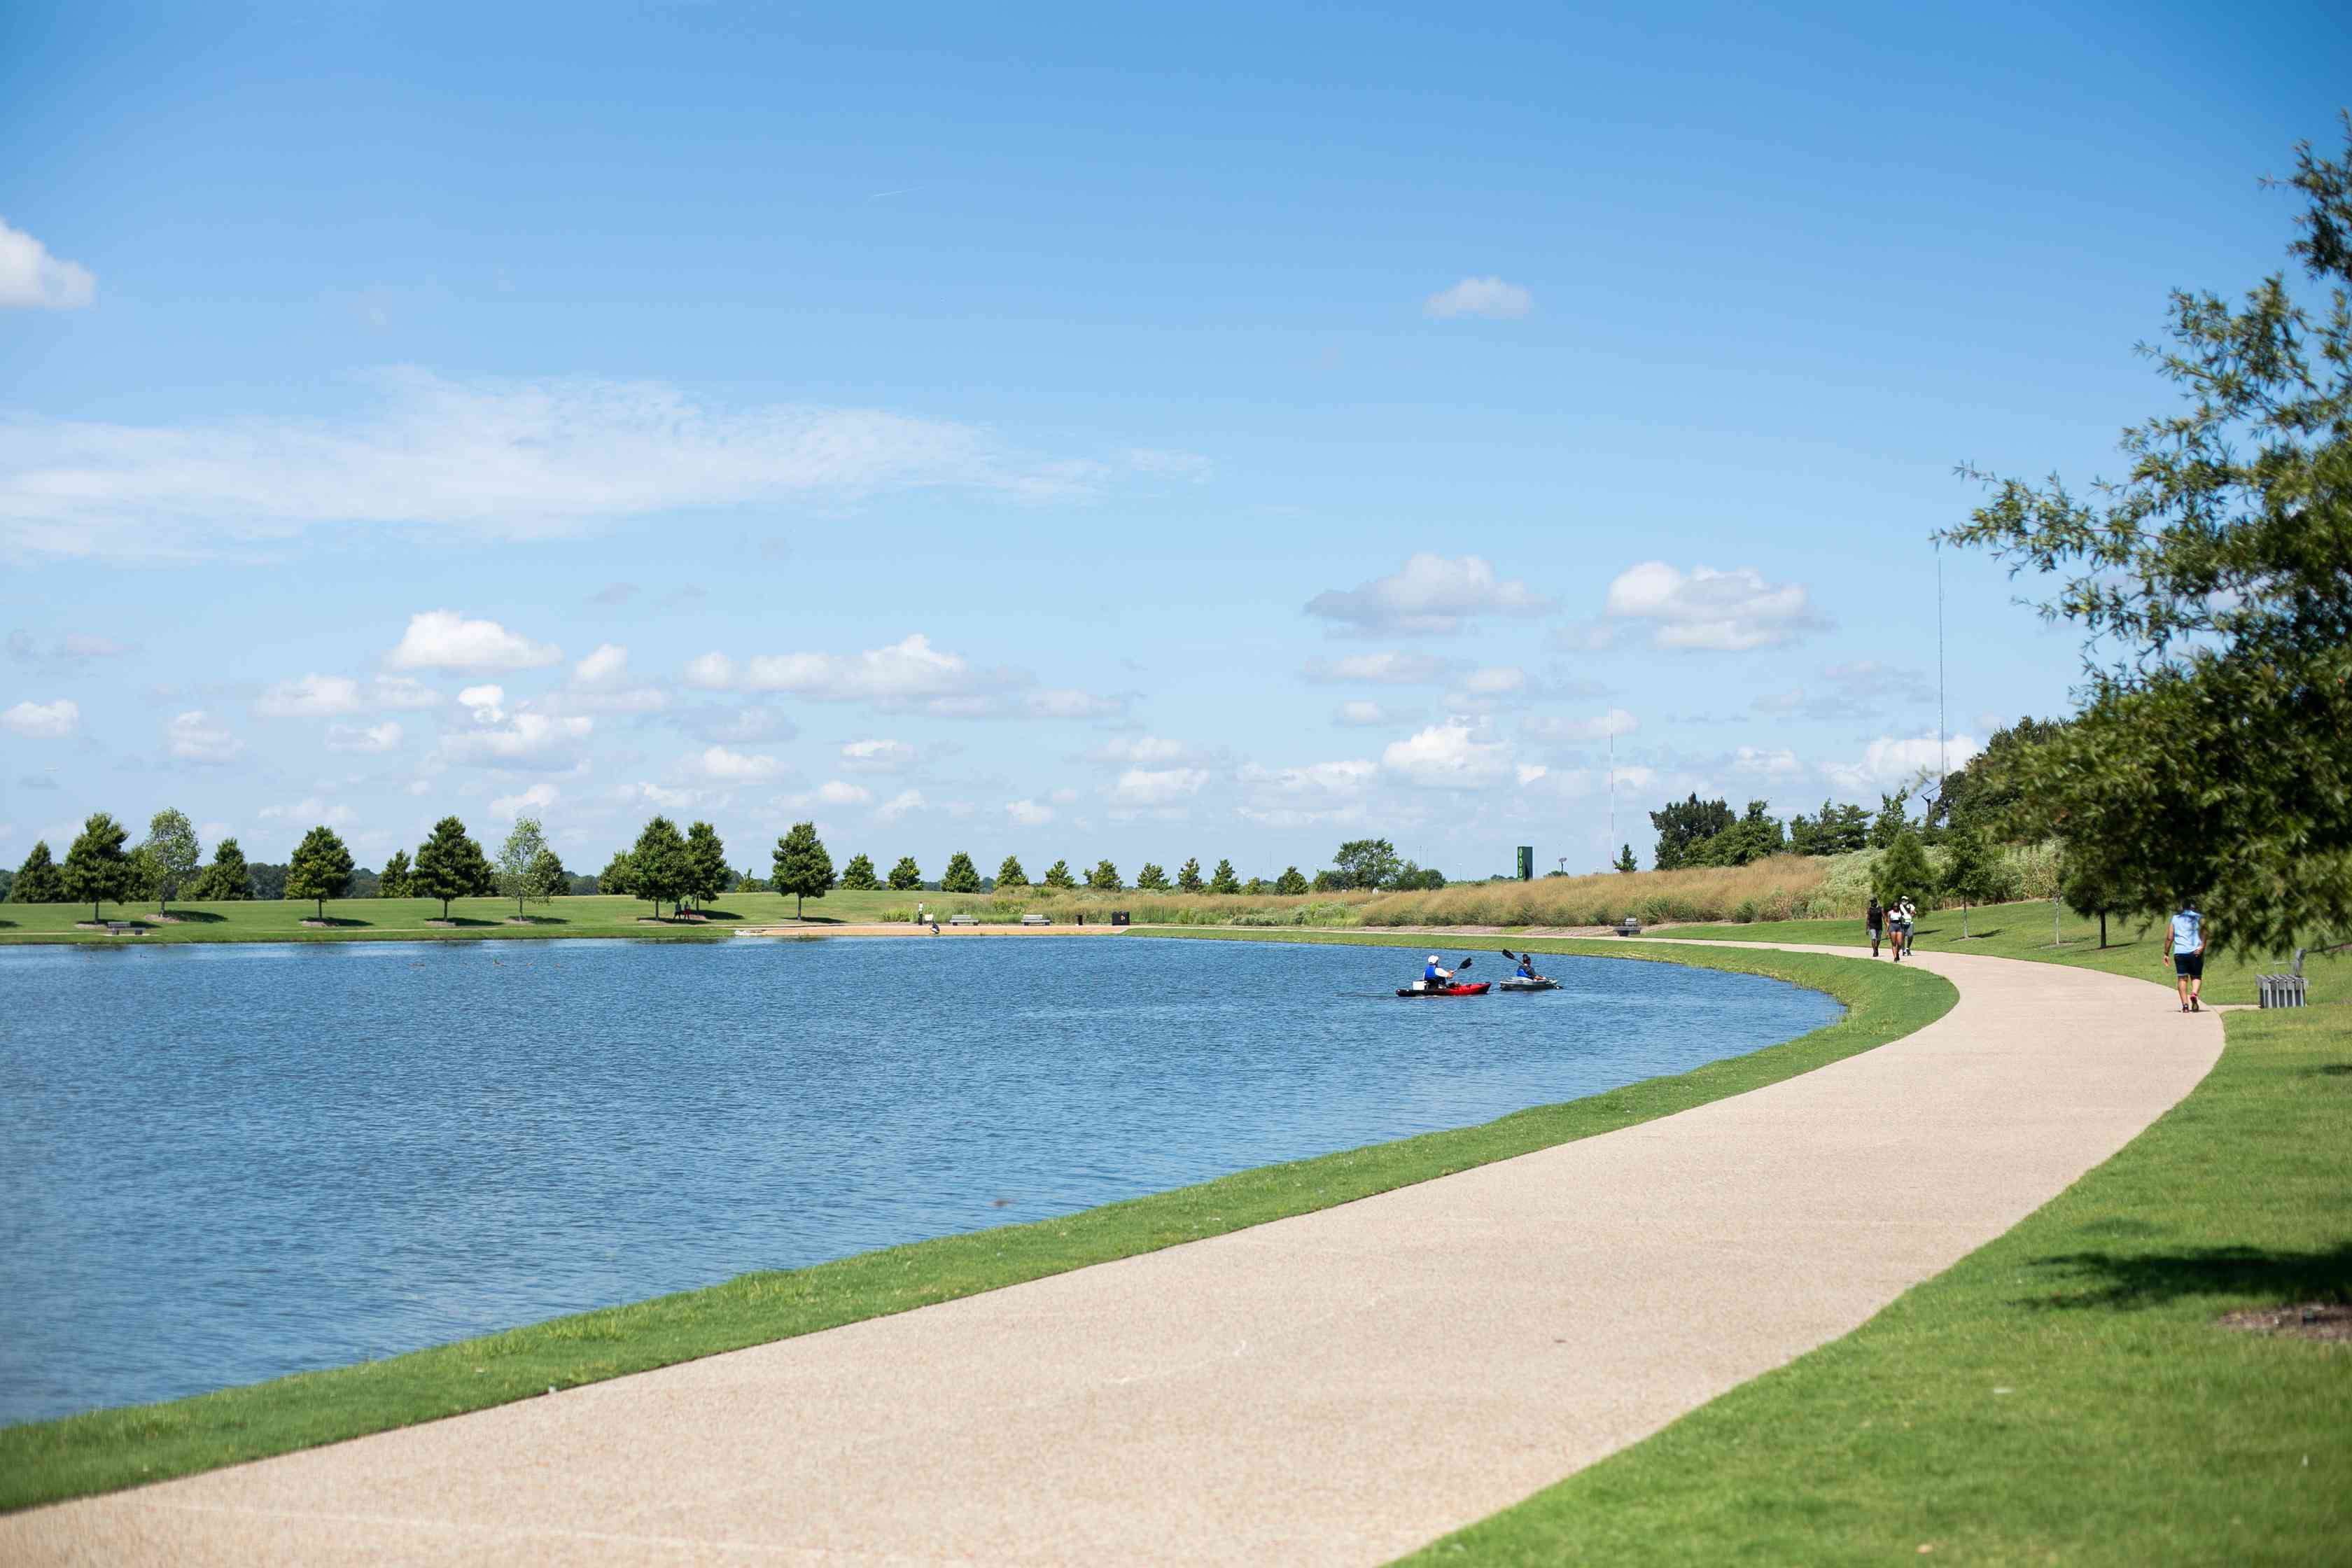 Shelby Farms Park in Memphis, Tennessee